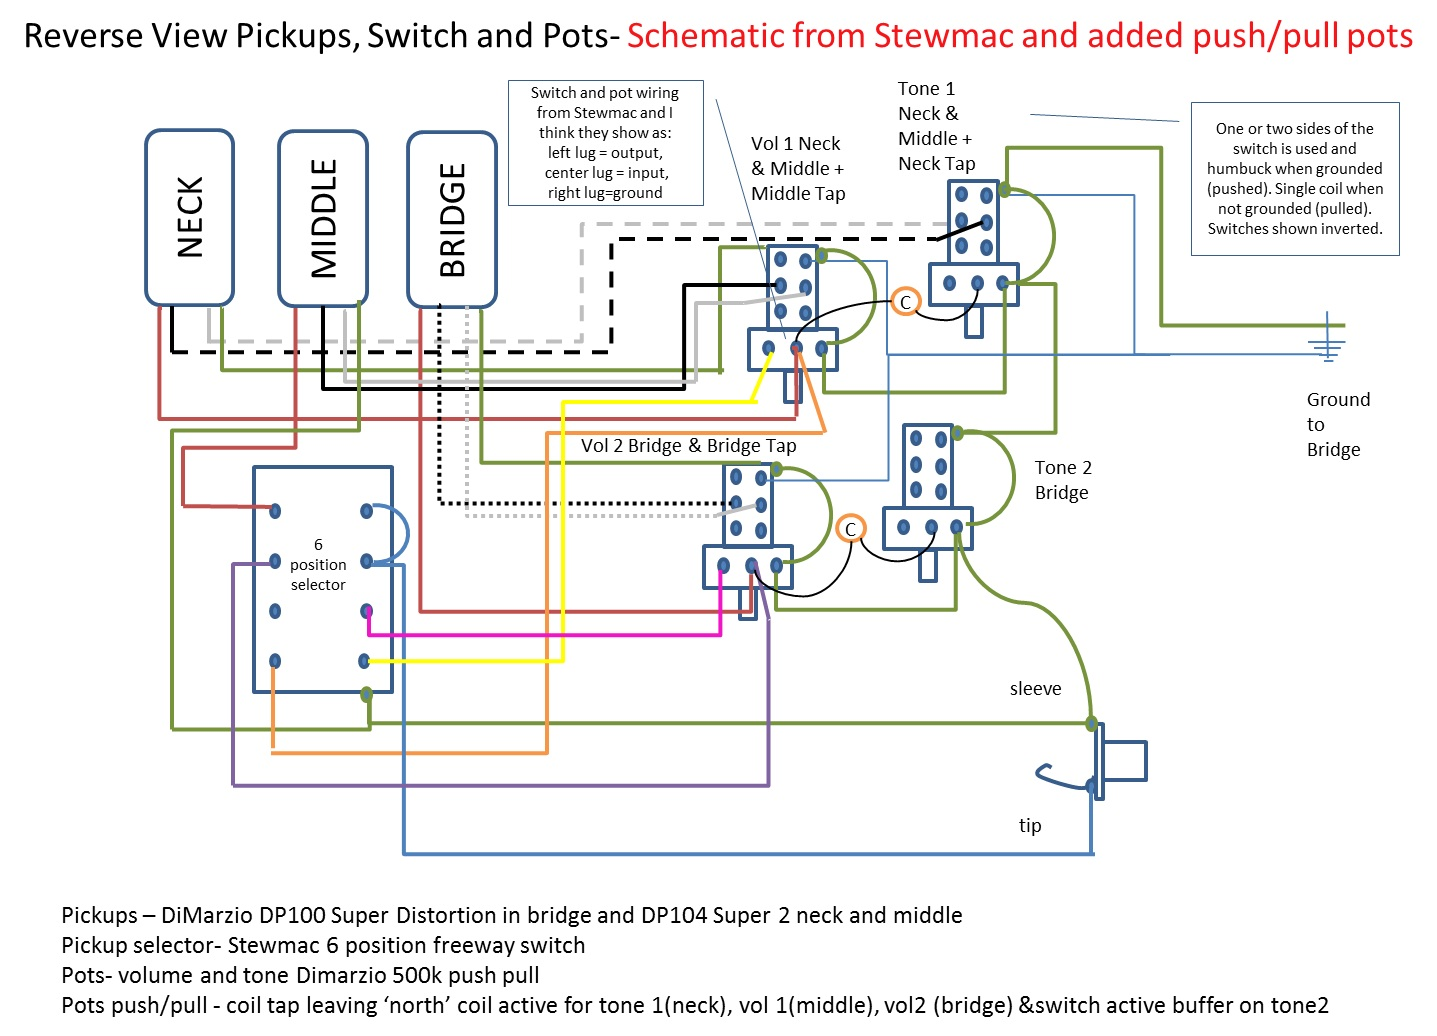 gibson pickup wiring diagram gibson pickup wiring series 4 gibson 3 way switch wiring gibson [ 1437 x 1036 Pixel ]